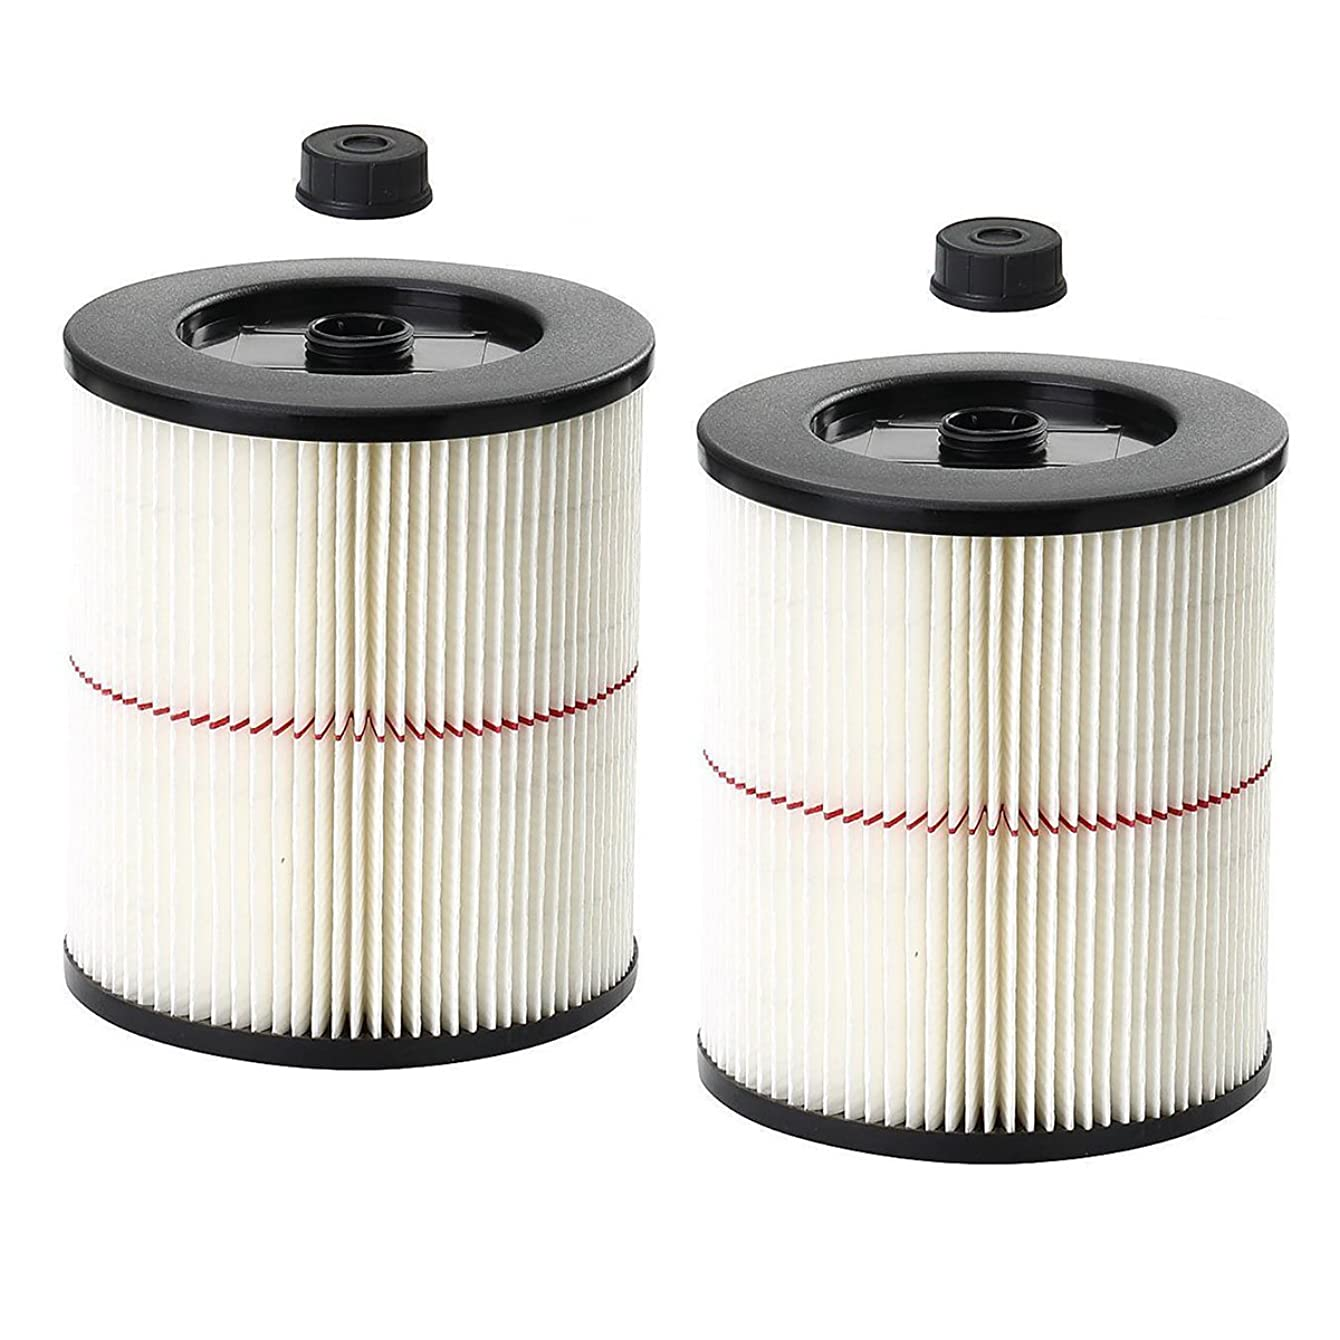 ANBOO Replacement Cartridge Filter for Shop Vac Craftsman 9-17816 Filter for Craftsman 17816 Vacuum Filter General Purpose Wet Dry Air Filter for 5 & Larger Gallon Vacuum Cleaner 2 Packs